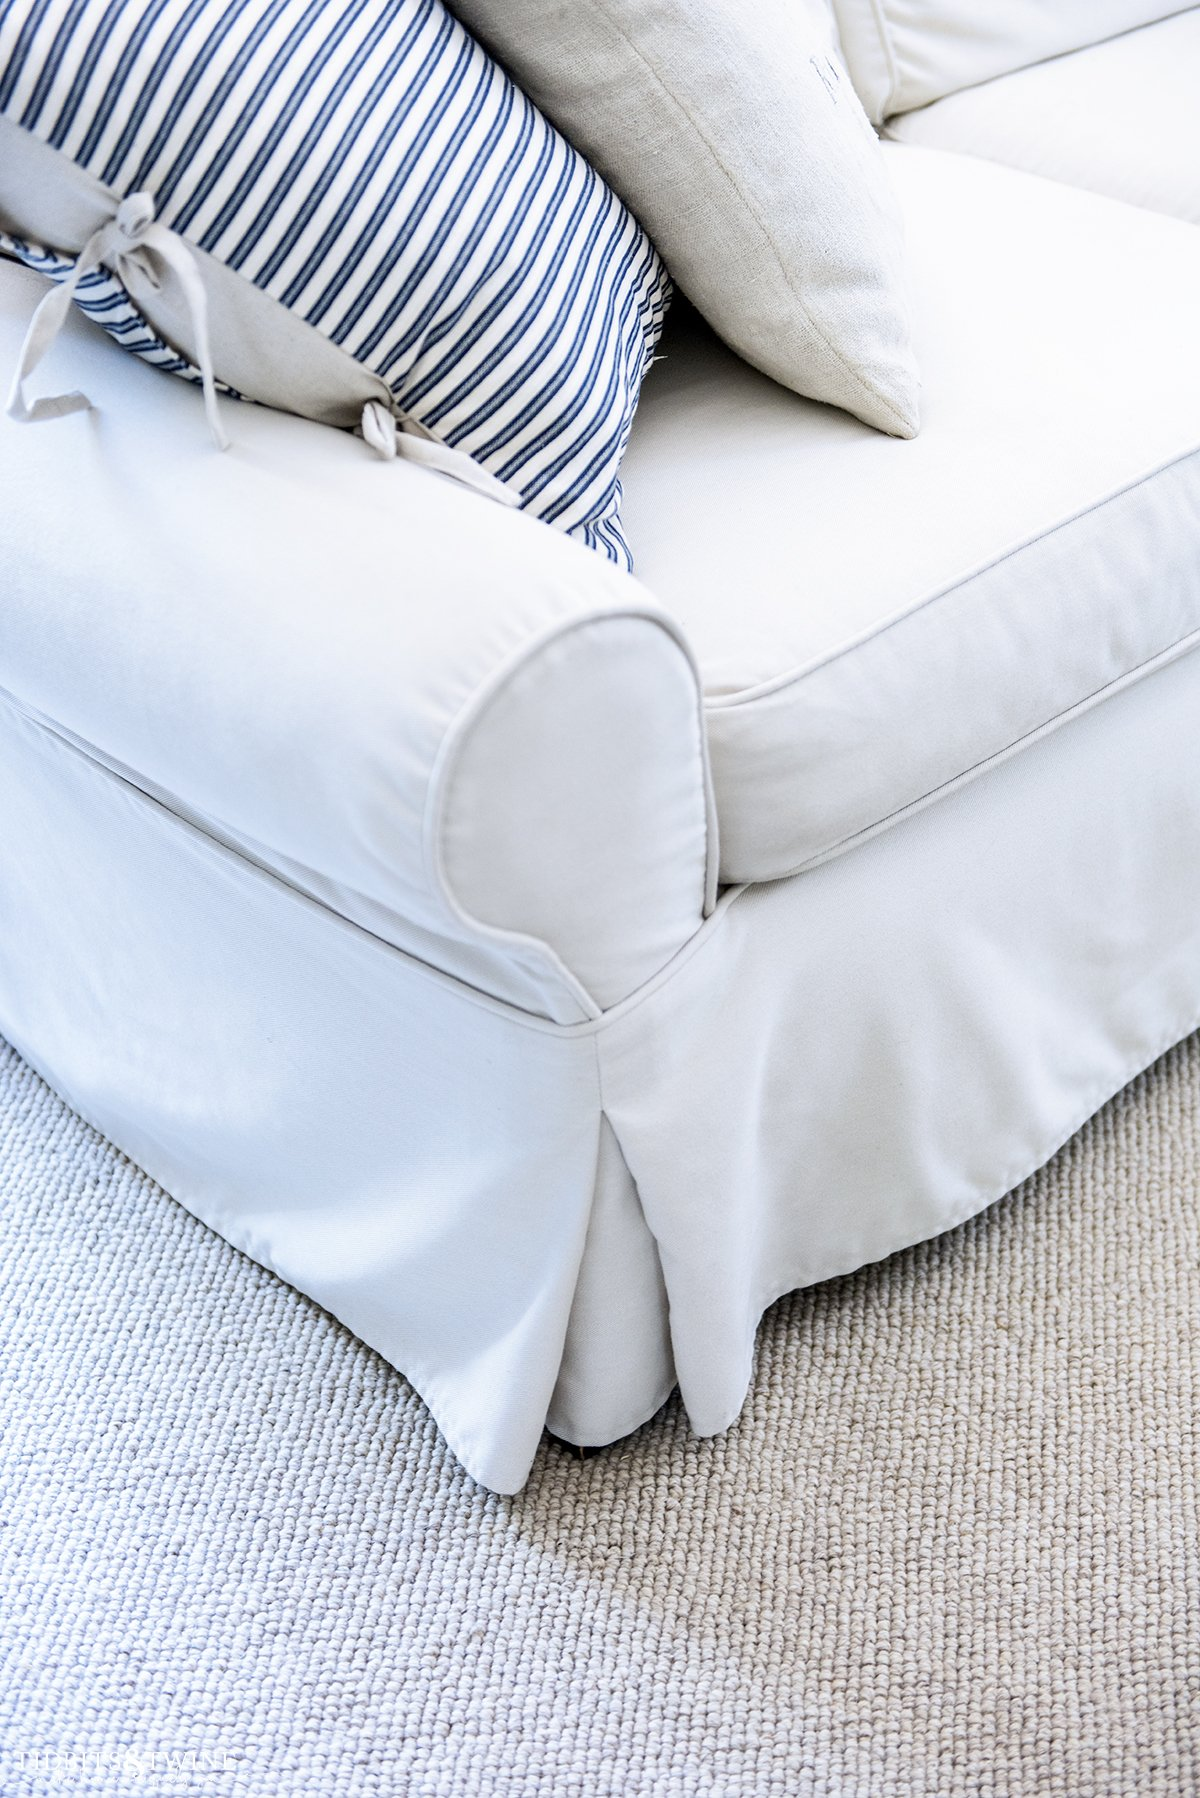 closeup of slipcovered sofa with blue stripped pillow on top next to grain sack pillow and loop wool area rug beneath